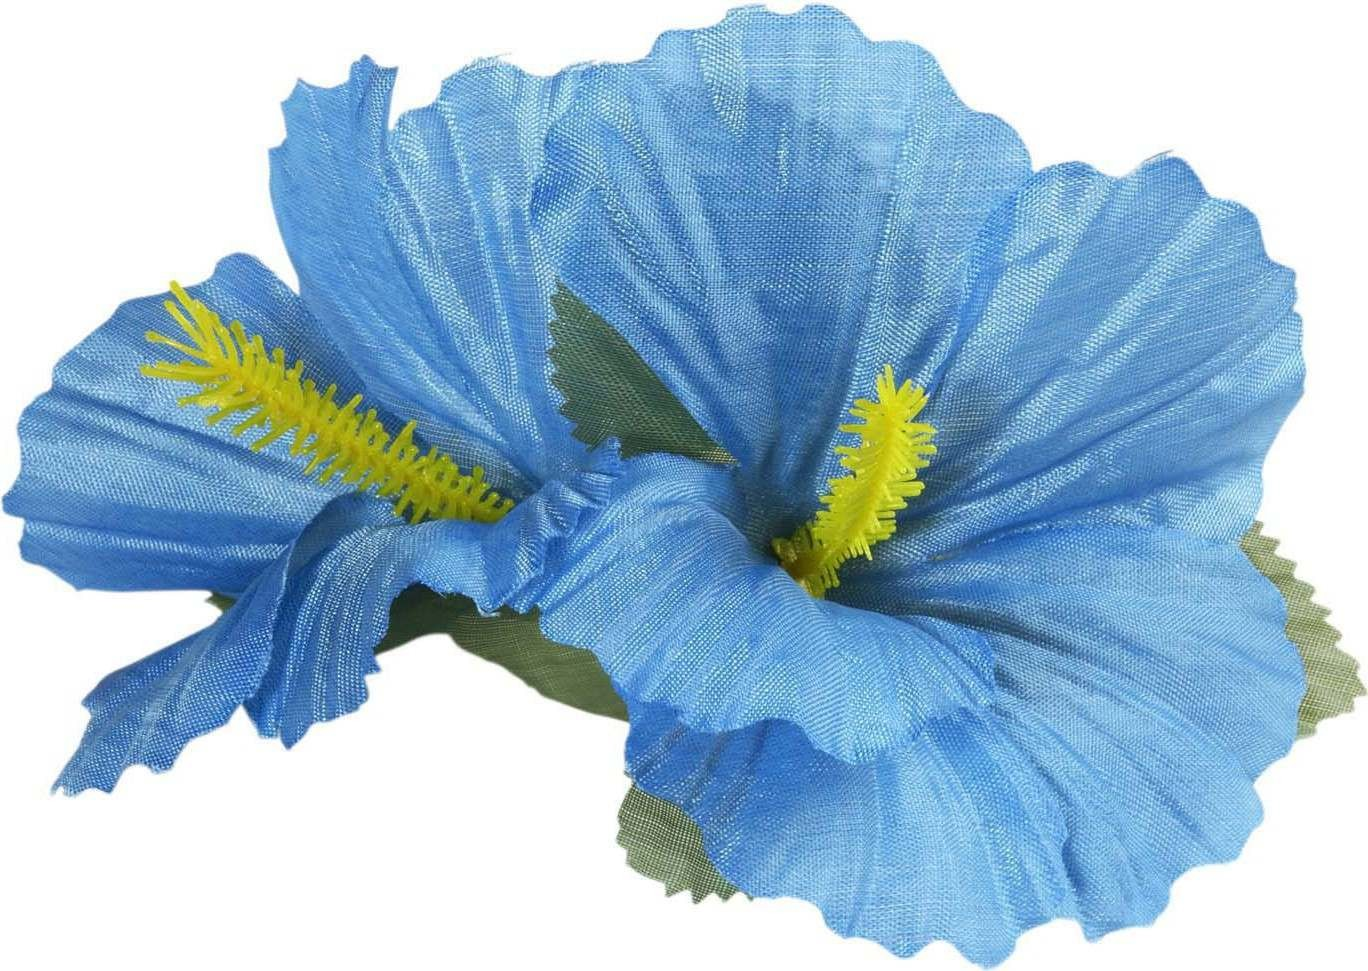 Ladies 2 Light Blue Hibiscus Flowers Hair Clips Accessories - (Blue)